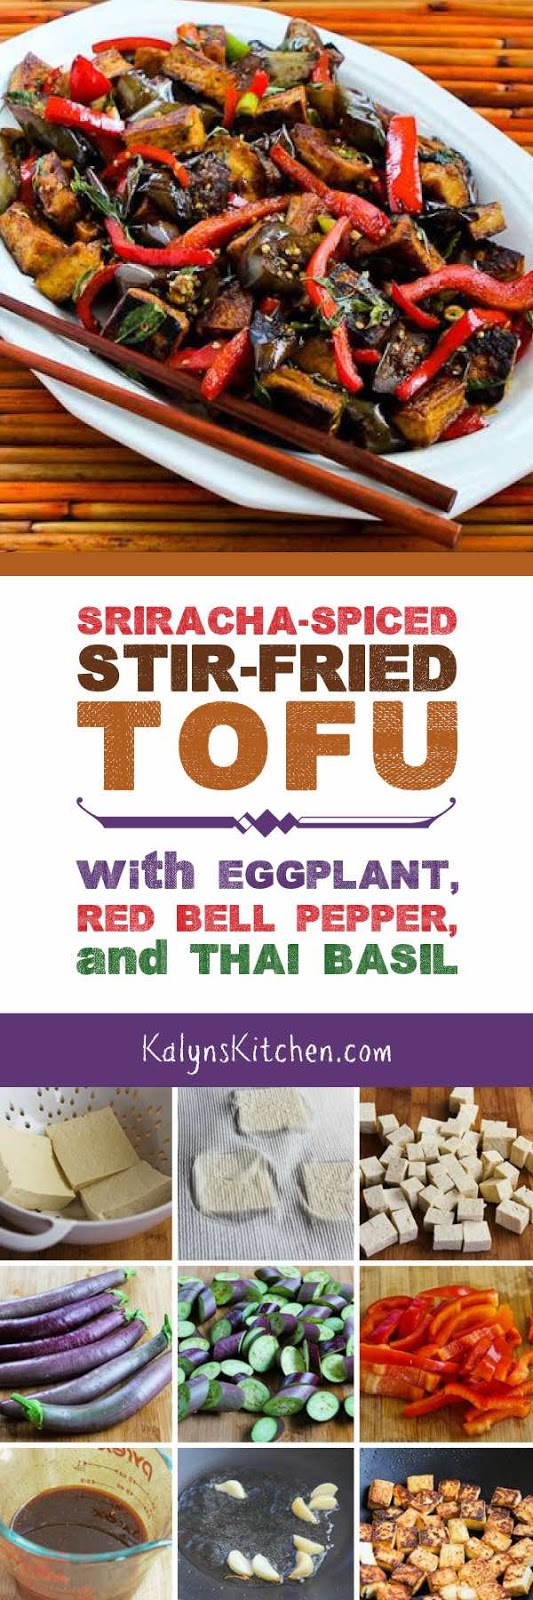 Spiced Stir-Fried Tofu with Eggplant, Red Bell Pepper, and Thai Basil ...